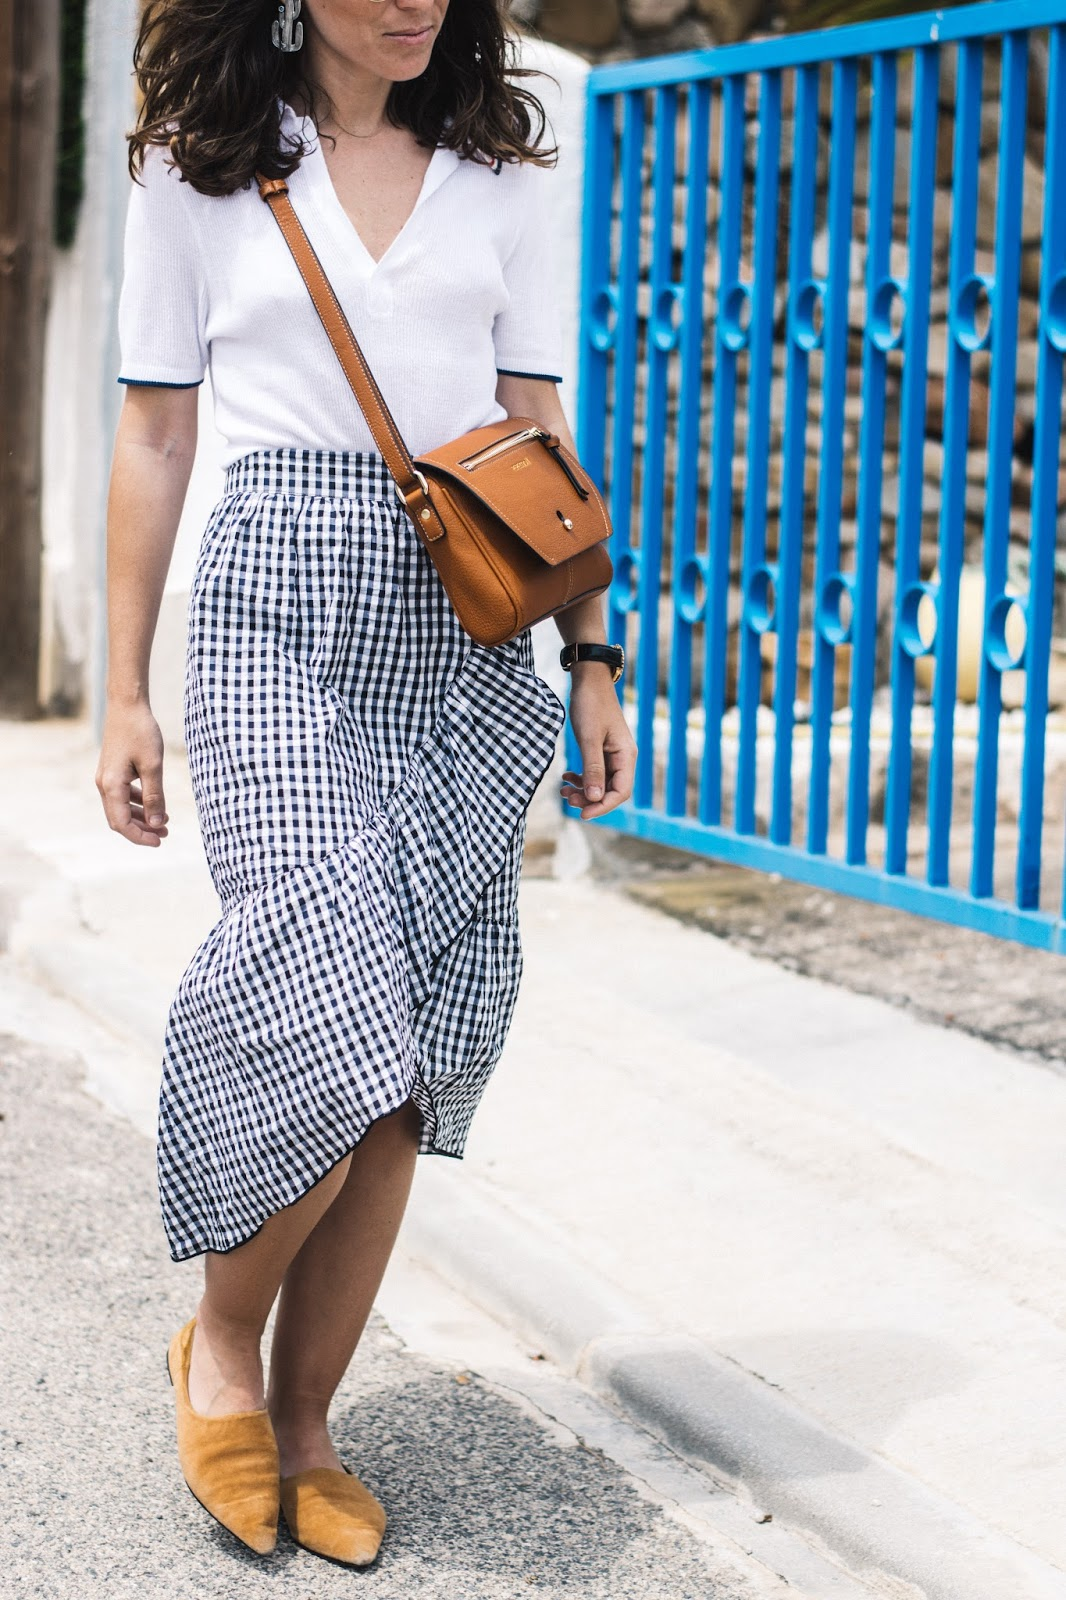 gingham_print_asos_skirt_pepe_moll_bag_hm_slip_on_hm_tennis_top-12